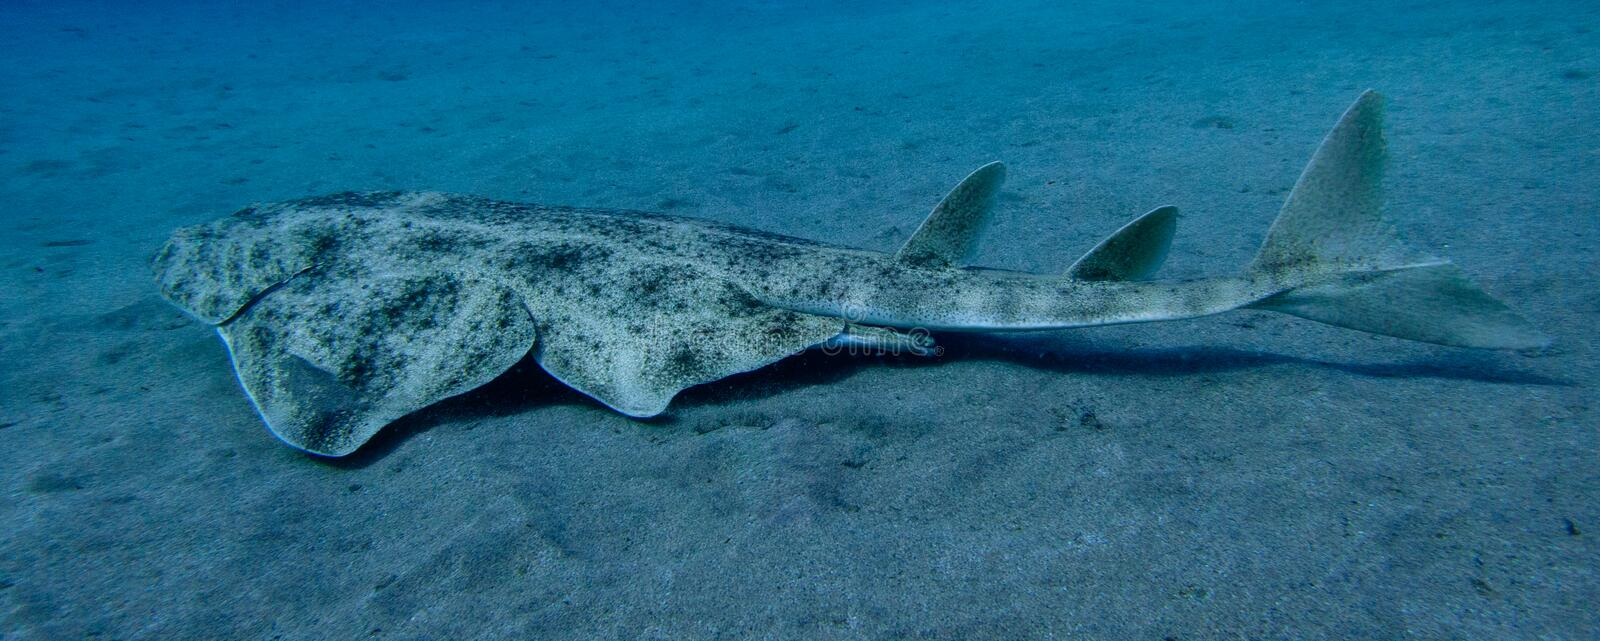 Angelshark over sand in blue ocean royalty free stock images